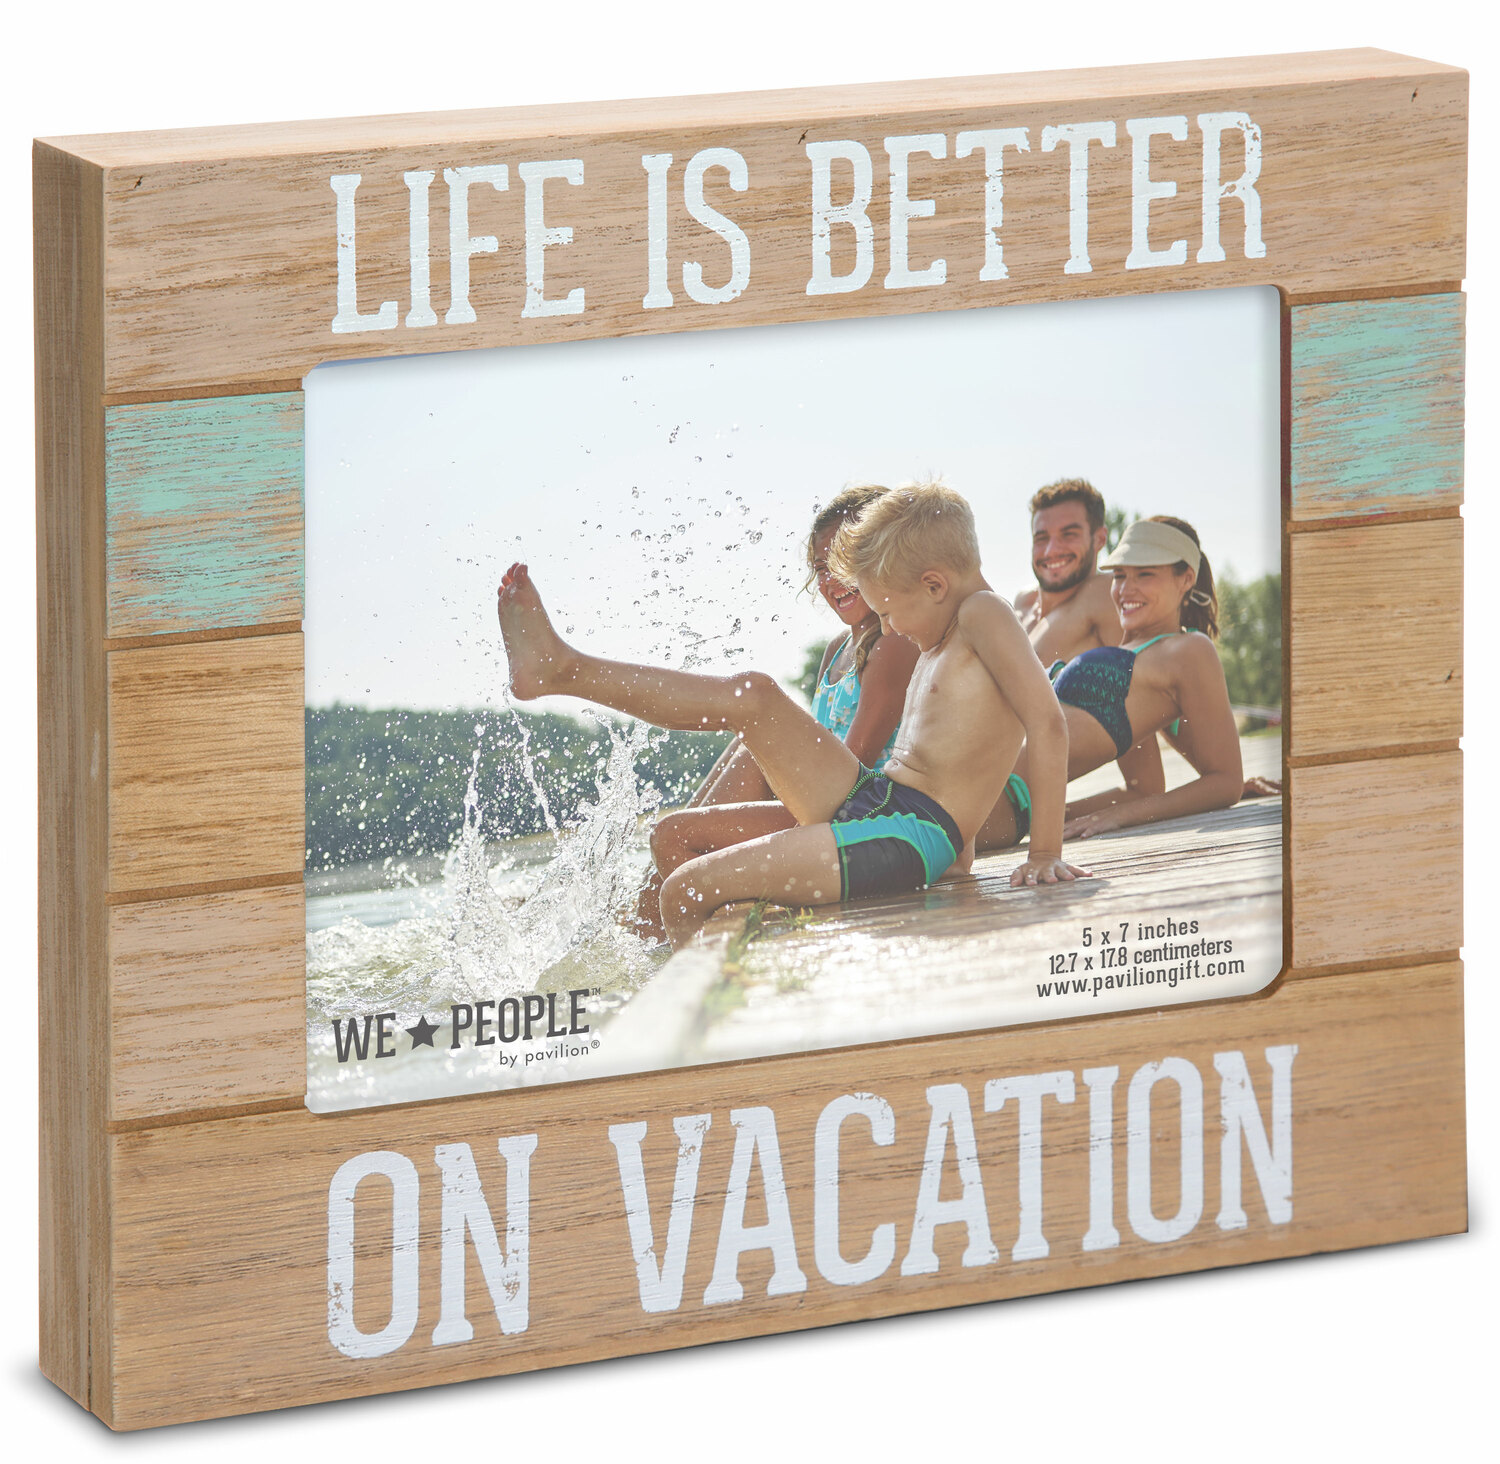 "Vacation People by We People - Vacation People - 9"" x 7.25"" Frame (Holds 5"" x 7"" photo)"